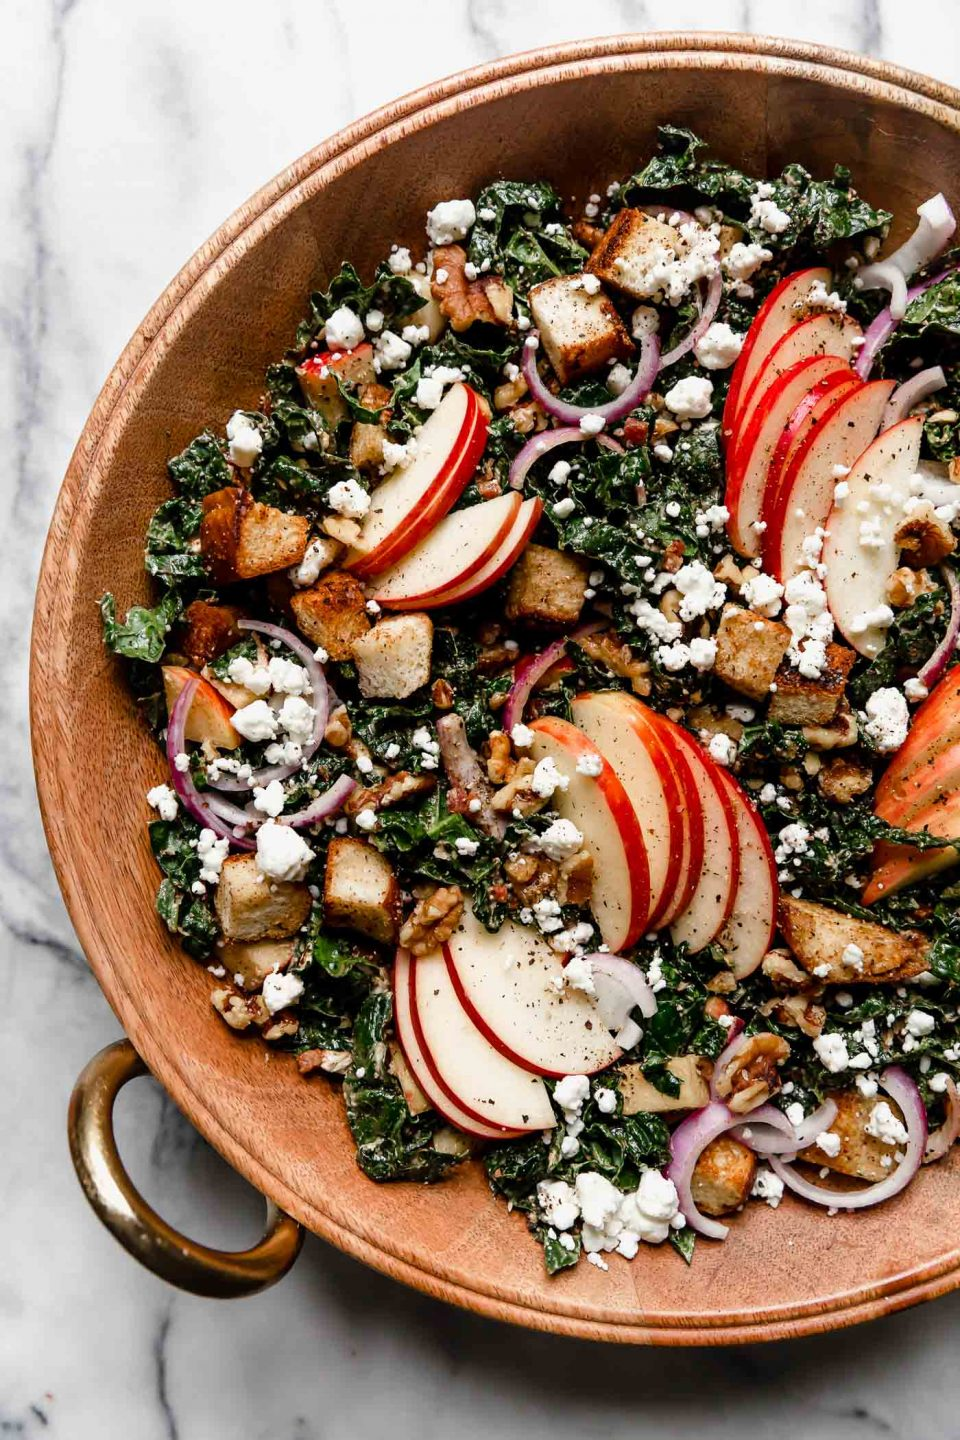 Tossed Autumn Kale salad in a large wooden serving bowl sitting on a white marble surface. The salad is topped with clusters of sliced honeycrisp apples & croutons.